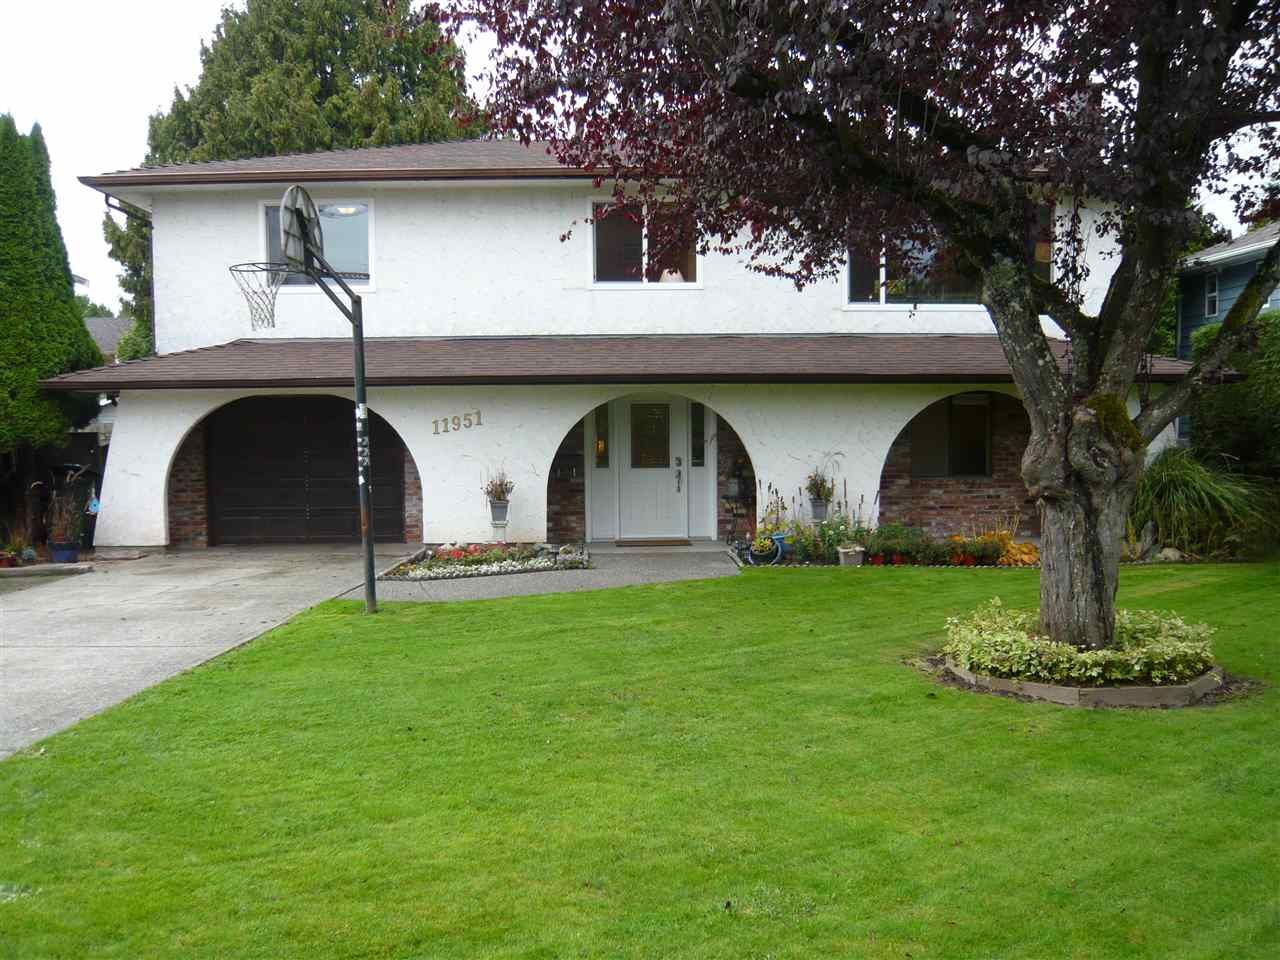 Main Photo: 11951 NO 2 ROAD in Vancouver: Westwind House for sale (Richmond)  : MLS®# R2118368